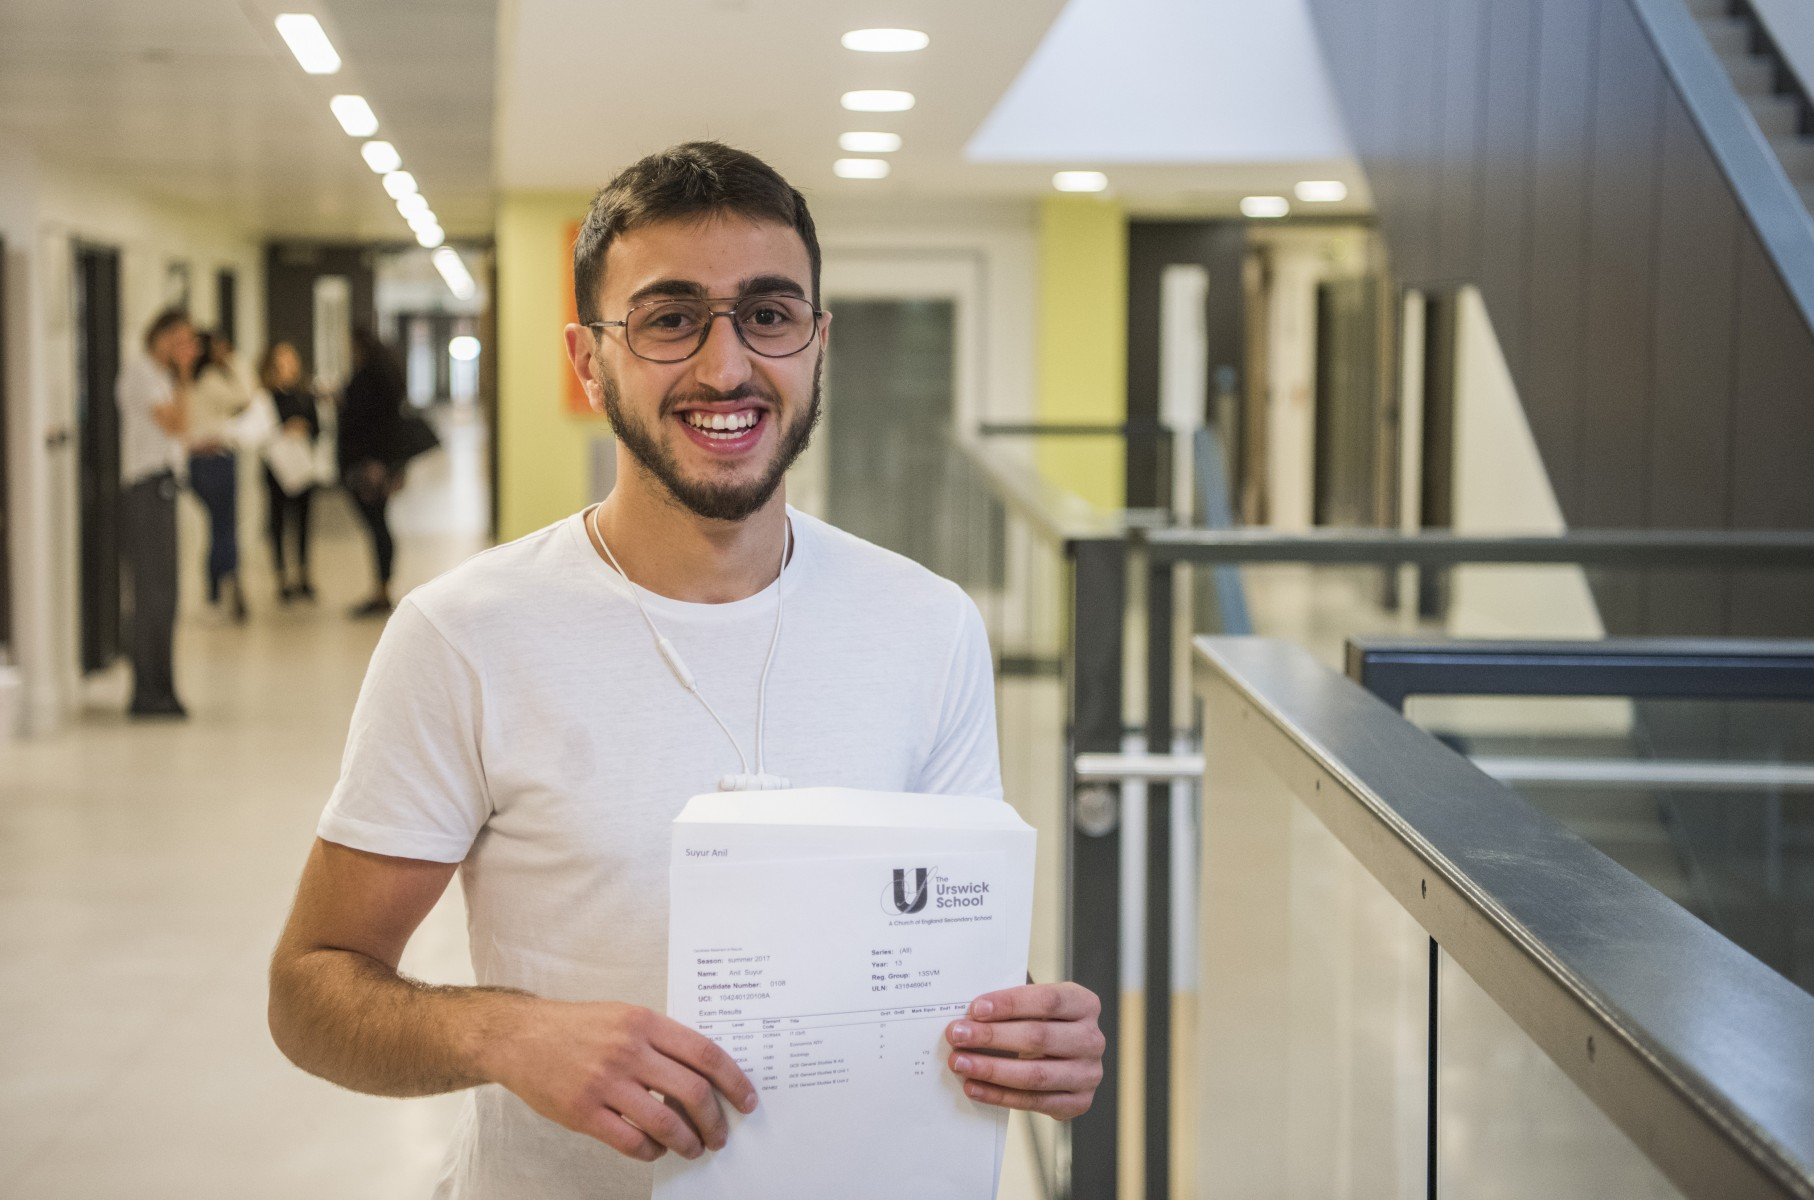 Anil Suyur from Urswick School celebrates after getting grades D1 Distinction A A A at A Level